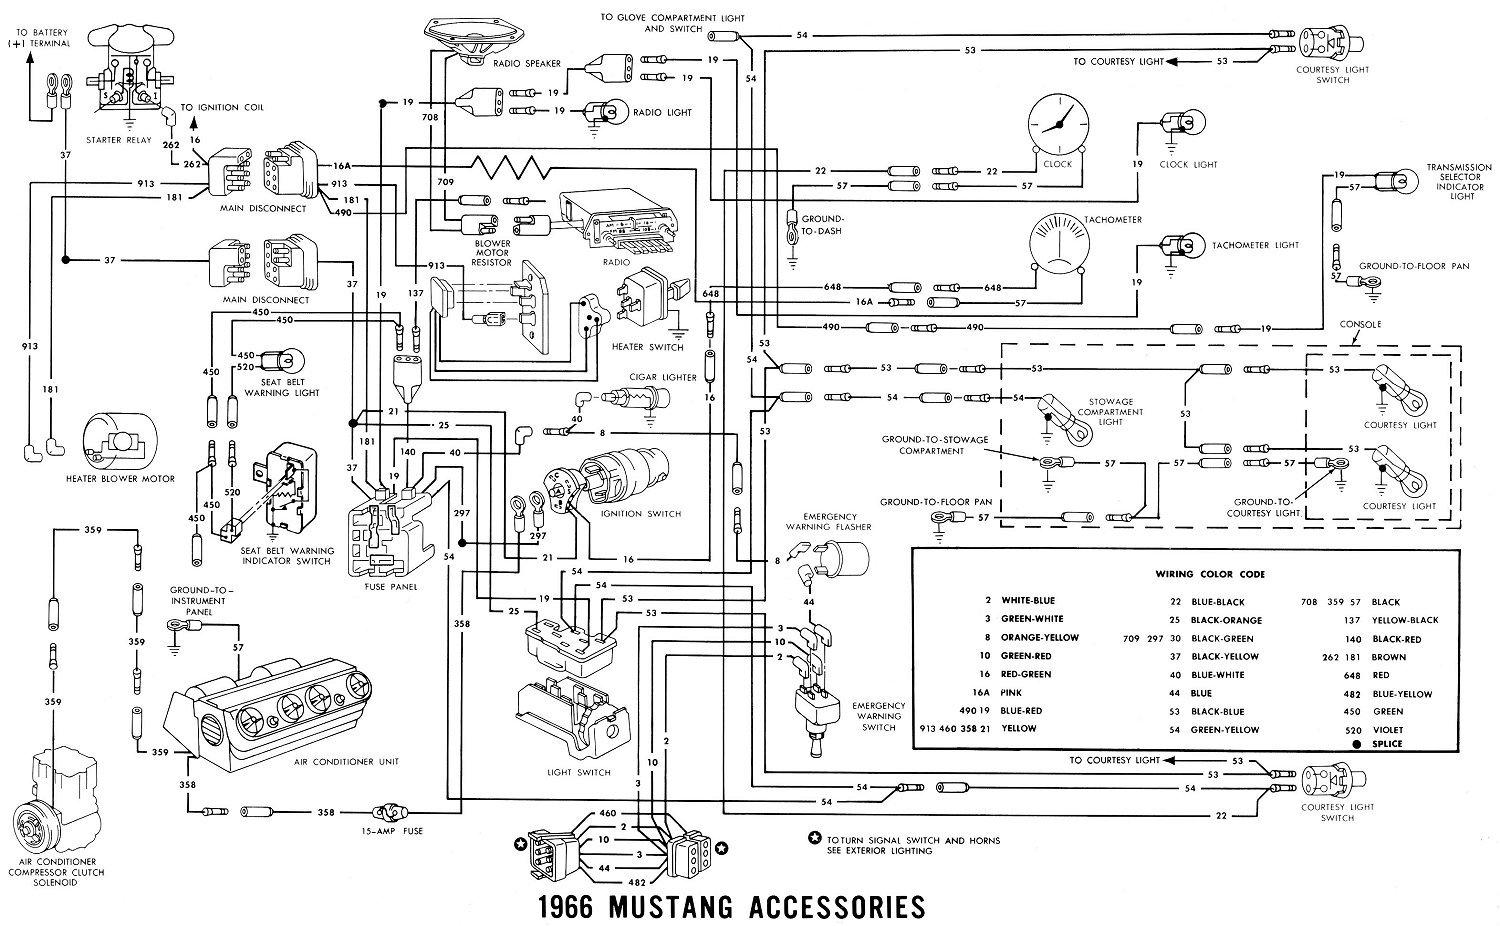 6324025 Post2 as well Mustang Wiring Diagrams in addition Wiring Diagram For 1995 Mercury Cougar Xr7 furthermore 1967 Mustang Starter Wiring Harness also 1969 Mustang Headlight Wiring Diagram. on 1967 mercury cougar headlight wiring diagram